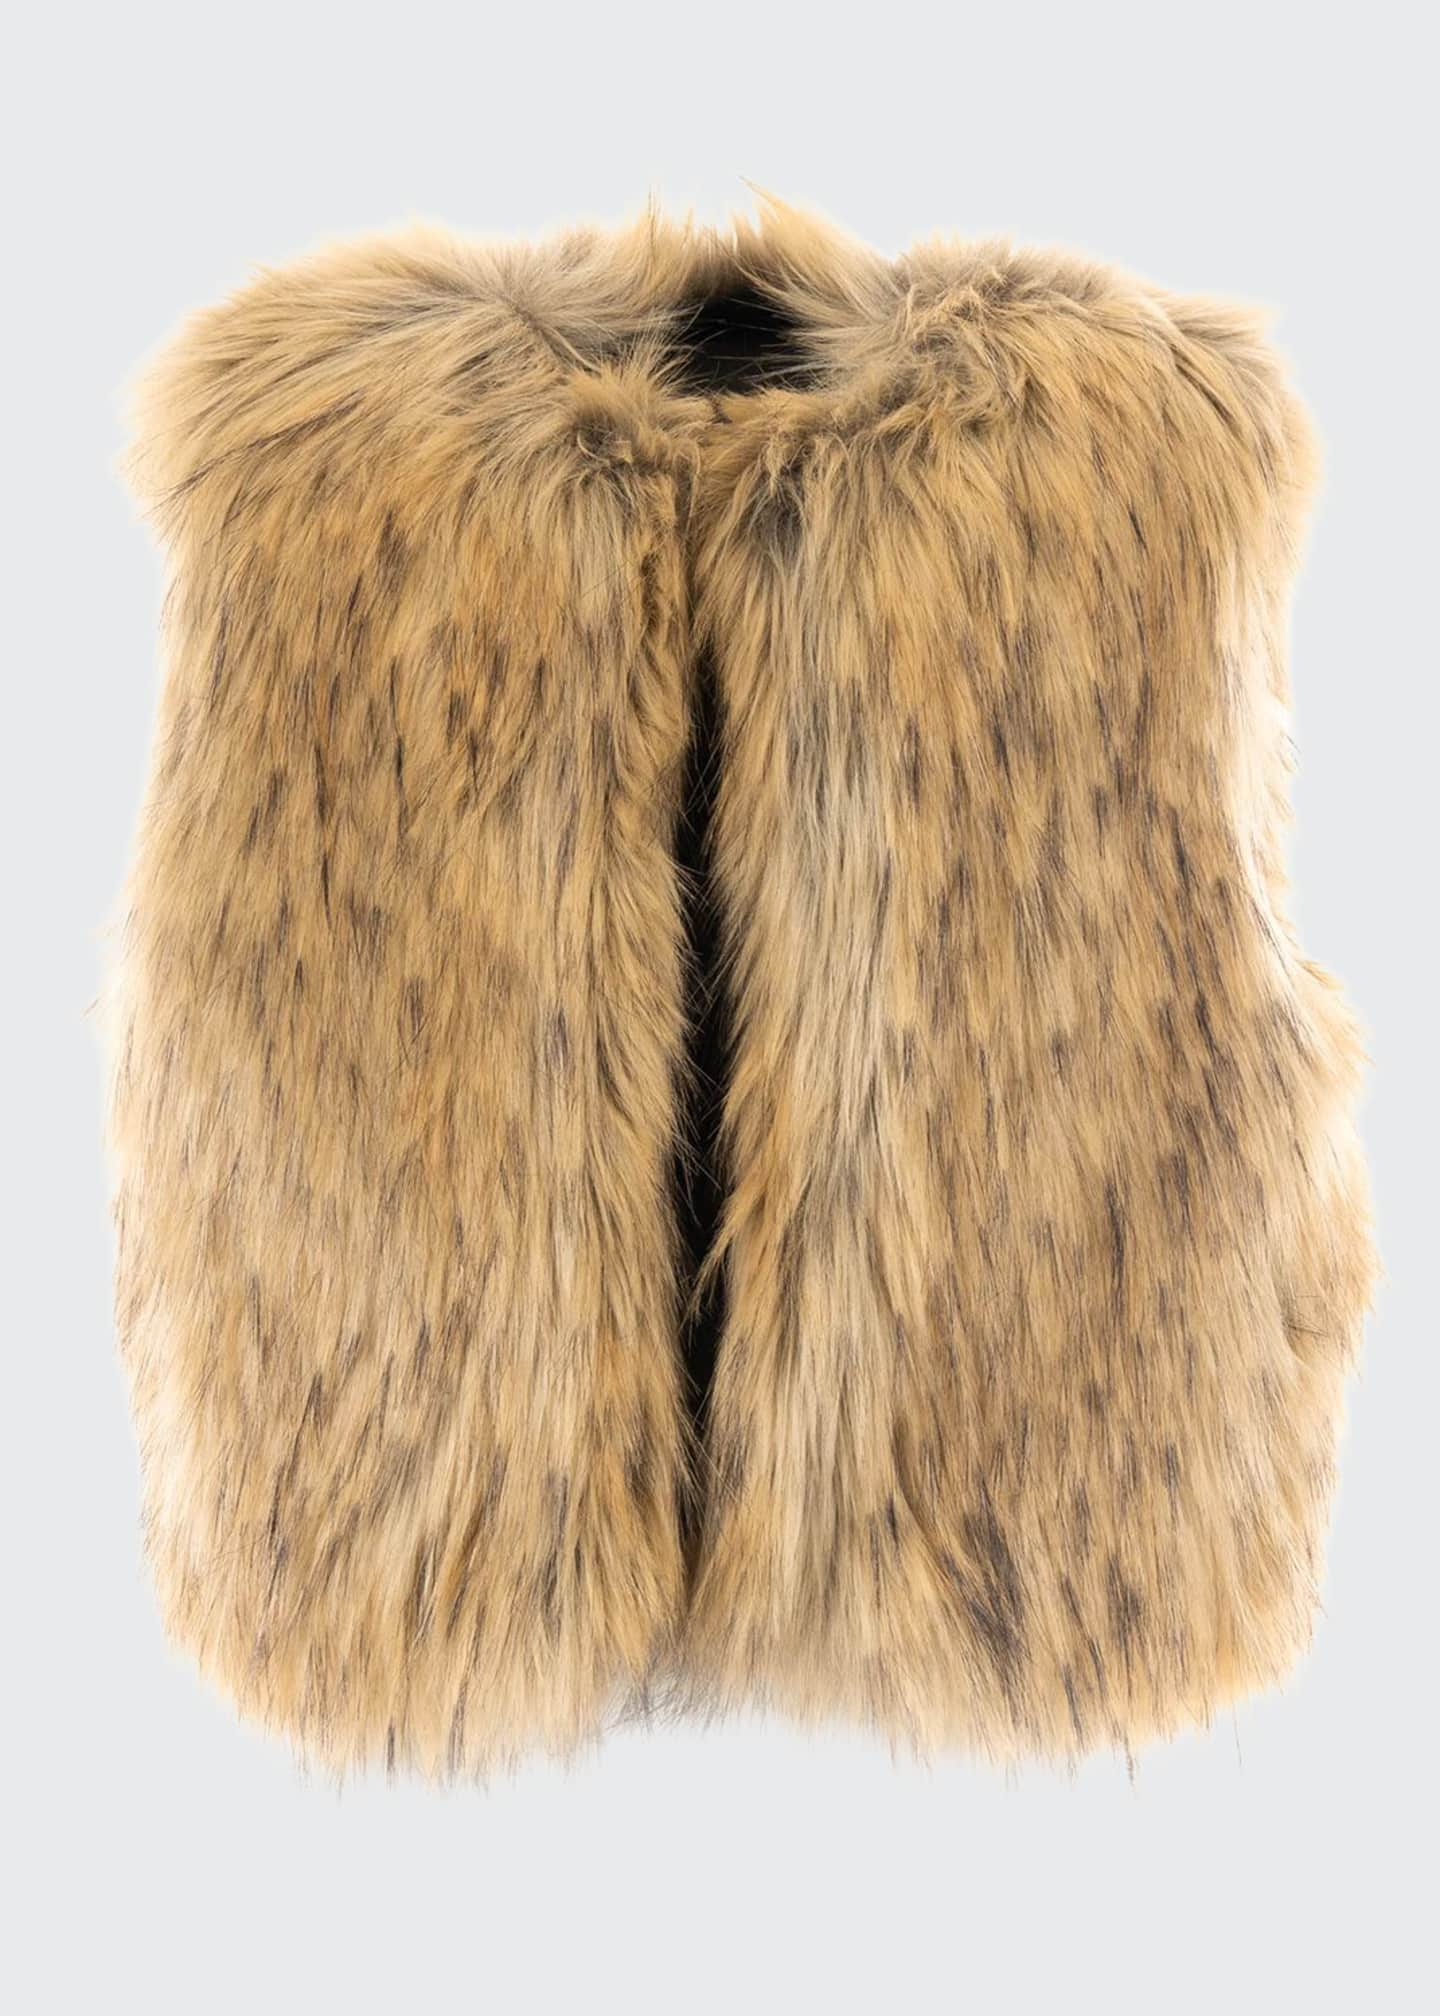 Fabulous Furs Kid's Fashion Faux Fur Vest, Size